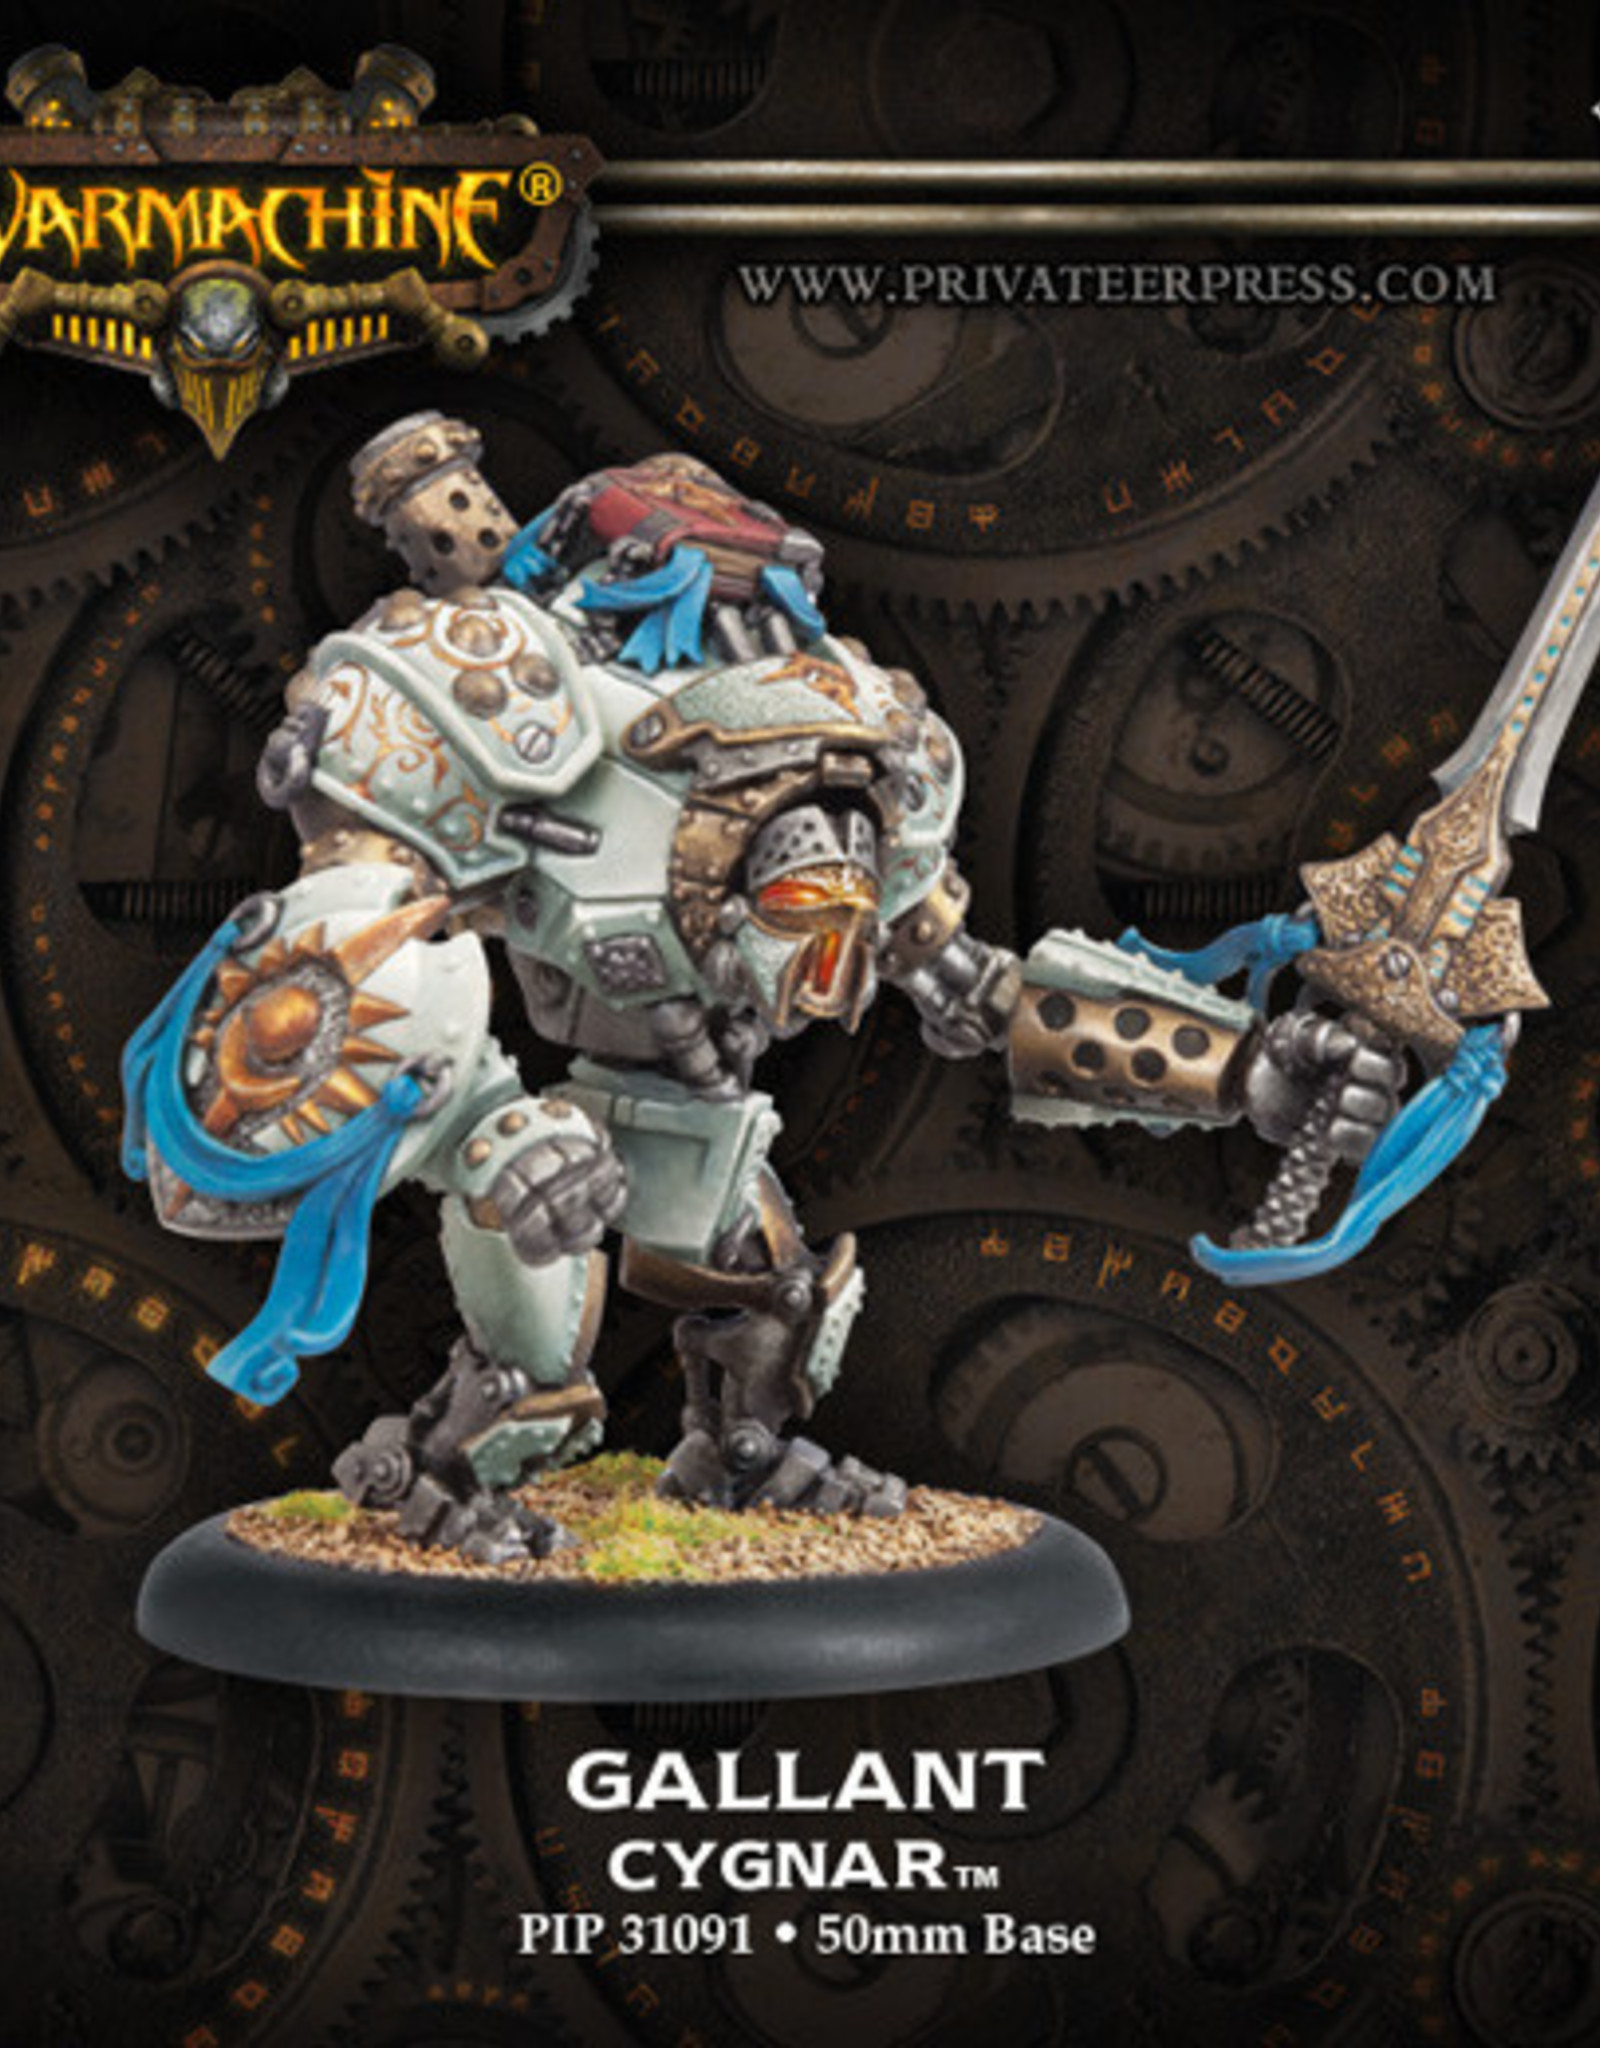 Warmachine Cygnar - Gallant Kit